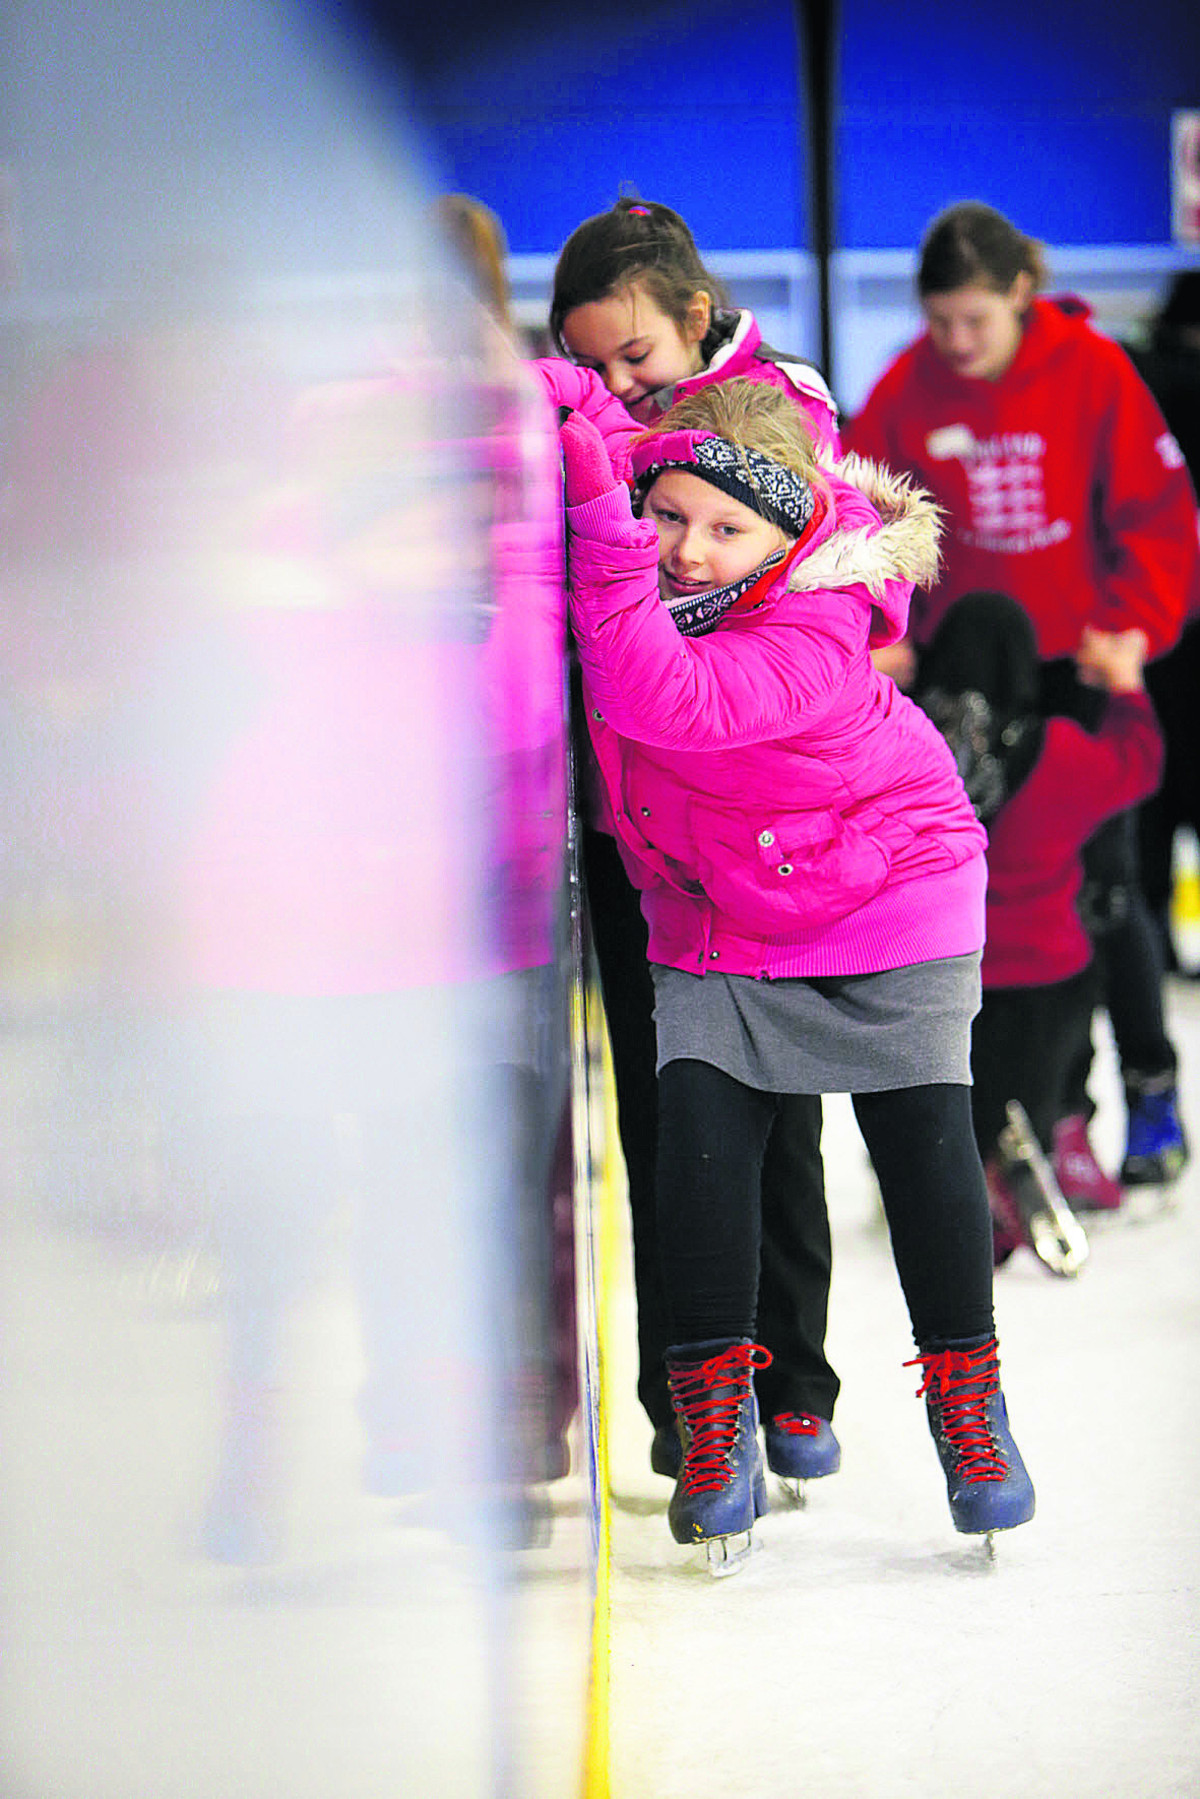 Anna Ward, from Rose Hill Primary School, hangs on tight as she negotiates the ice at the Oxpens rink